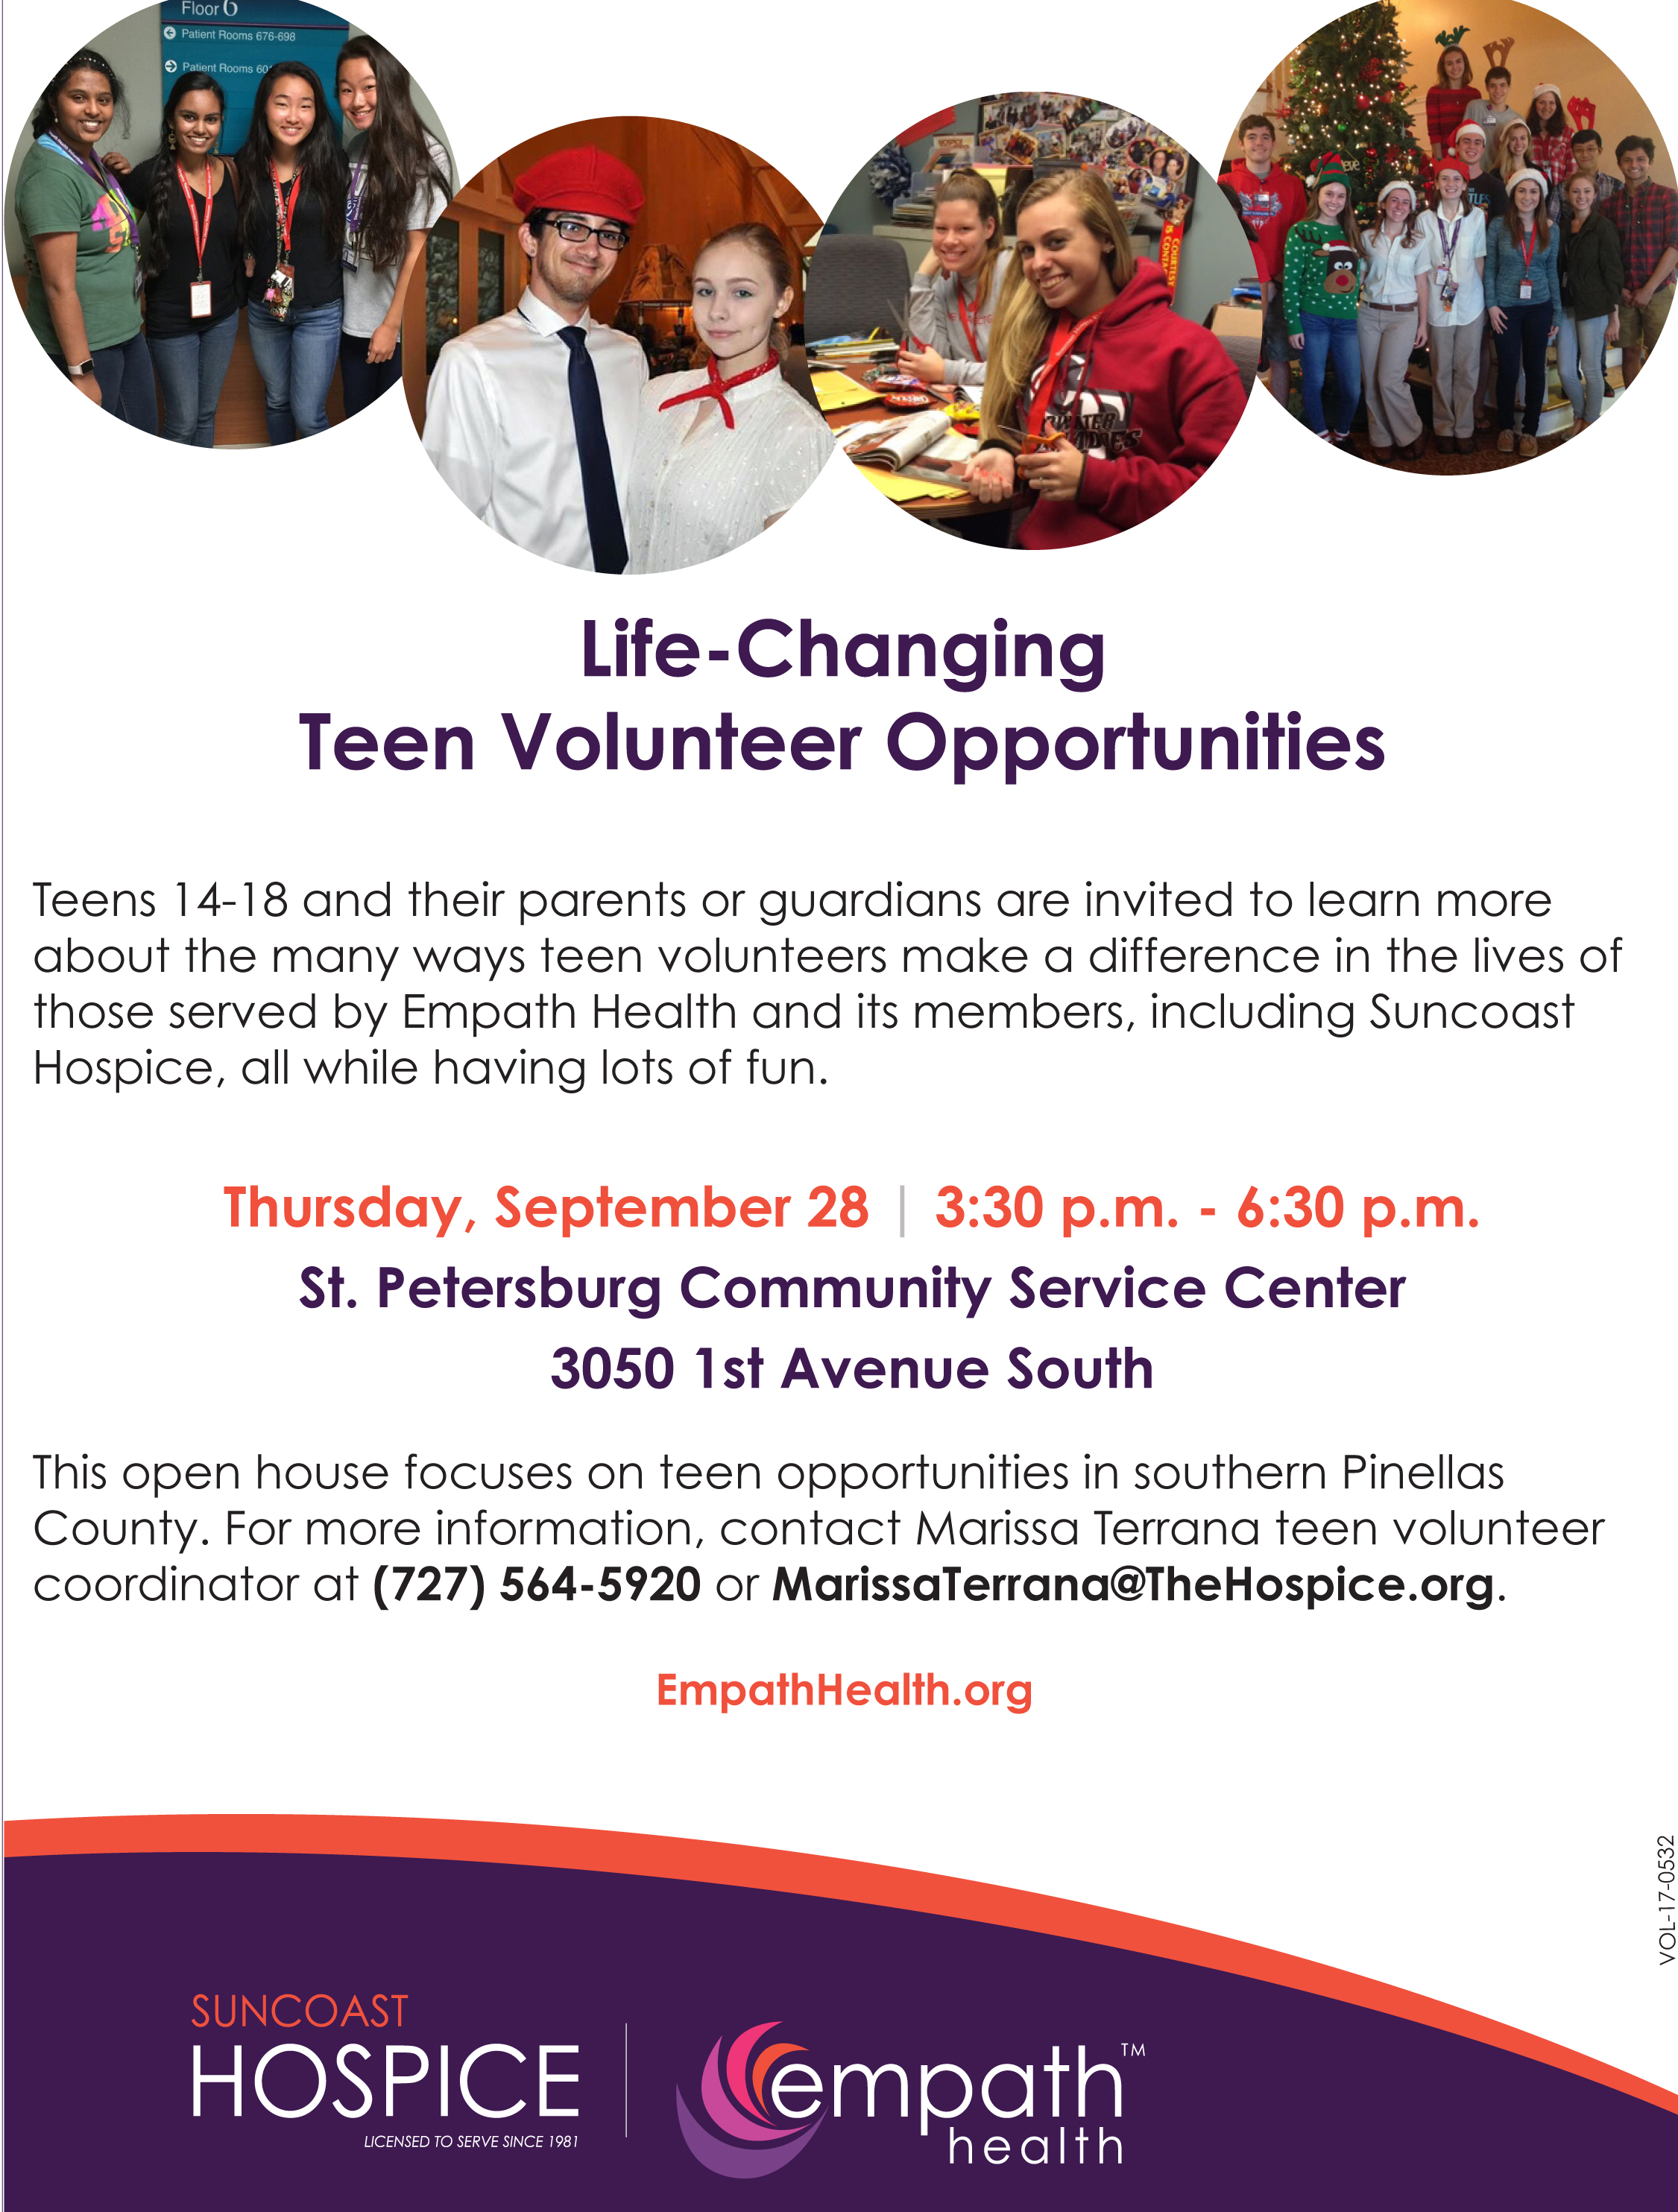 Teen Volunteer Recruitment Open House @ Suncoast Hospice | Empath Health | Clearwater | Florida | United States